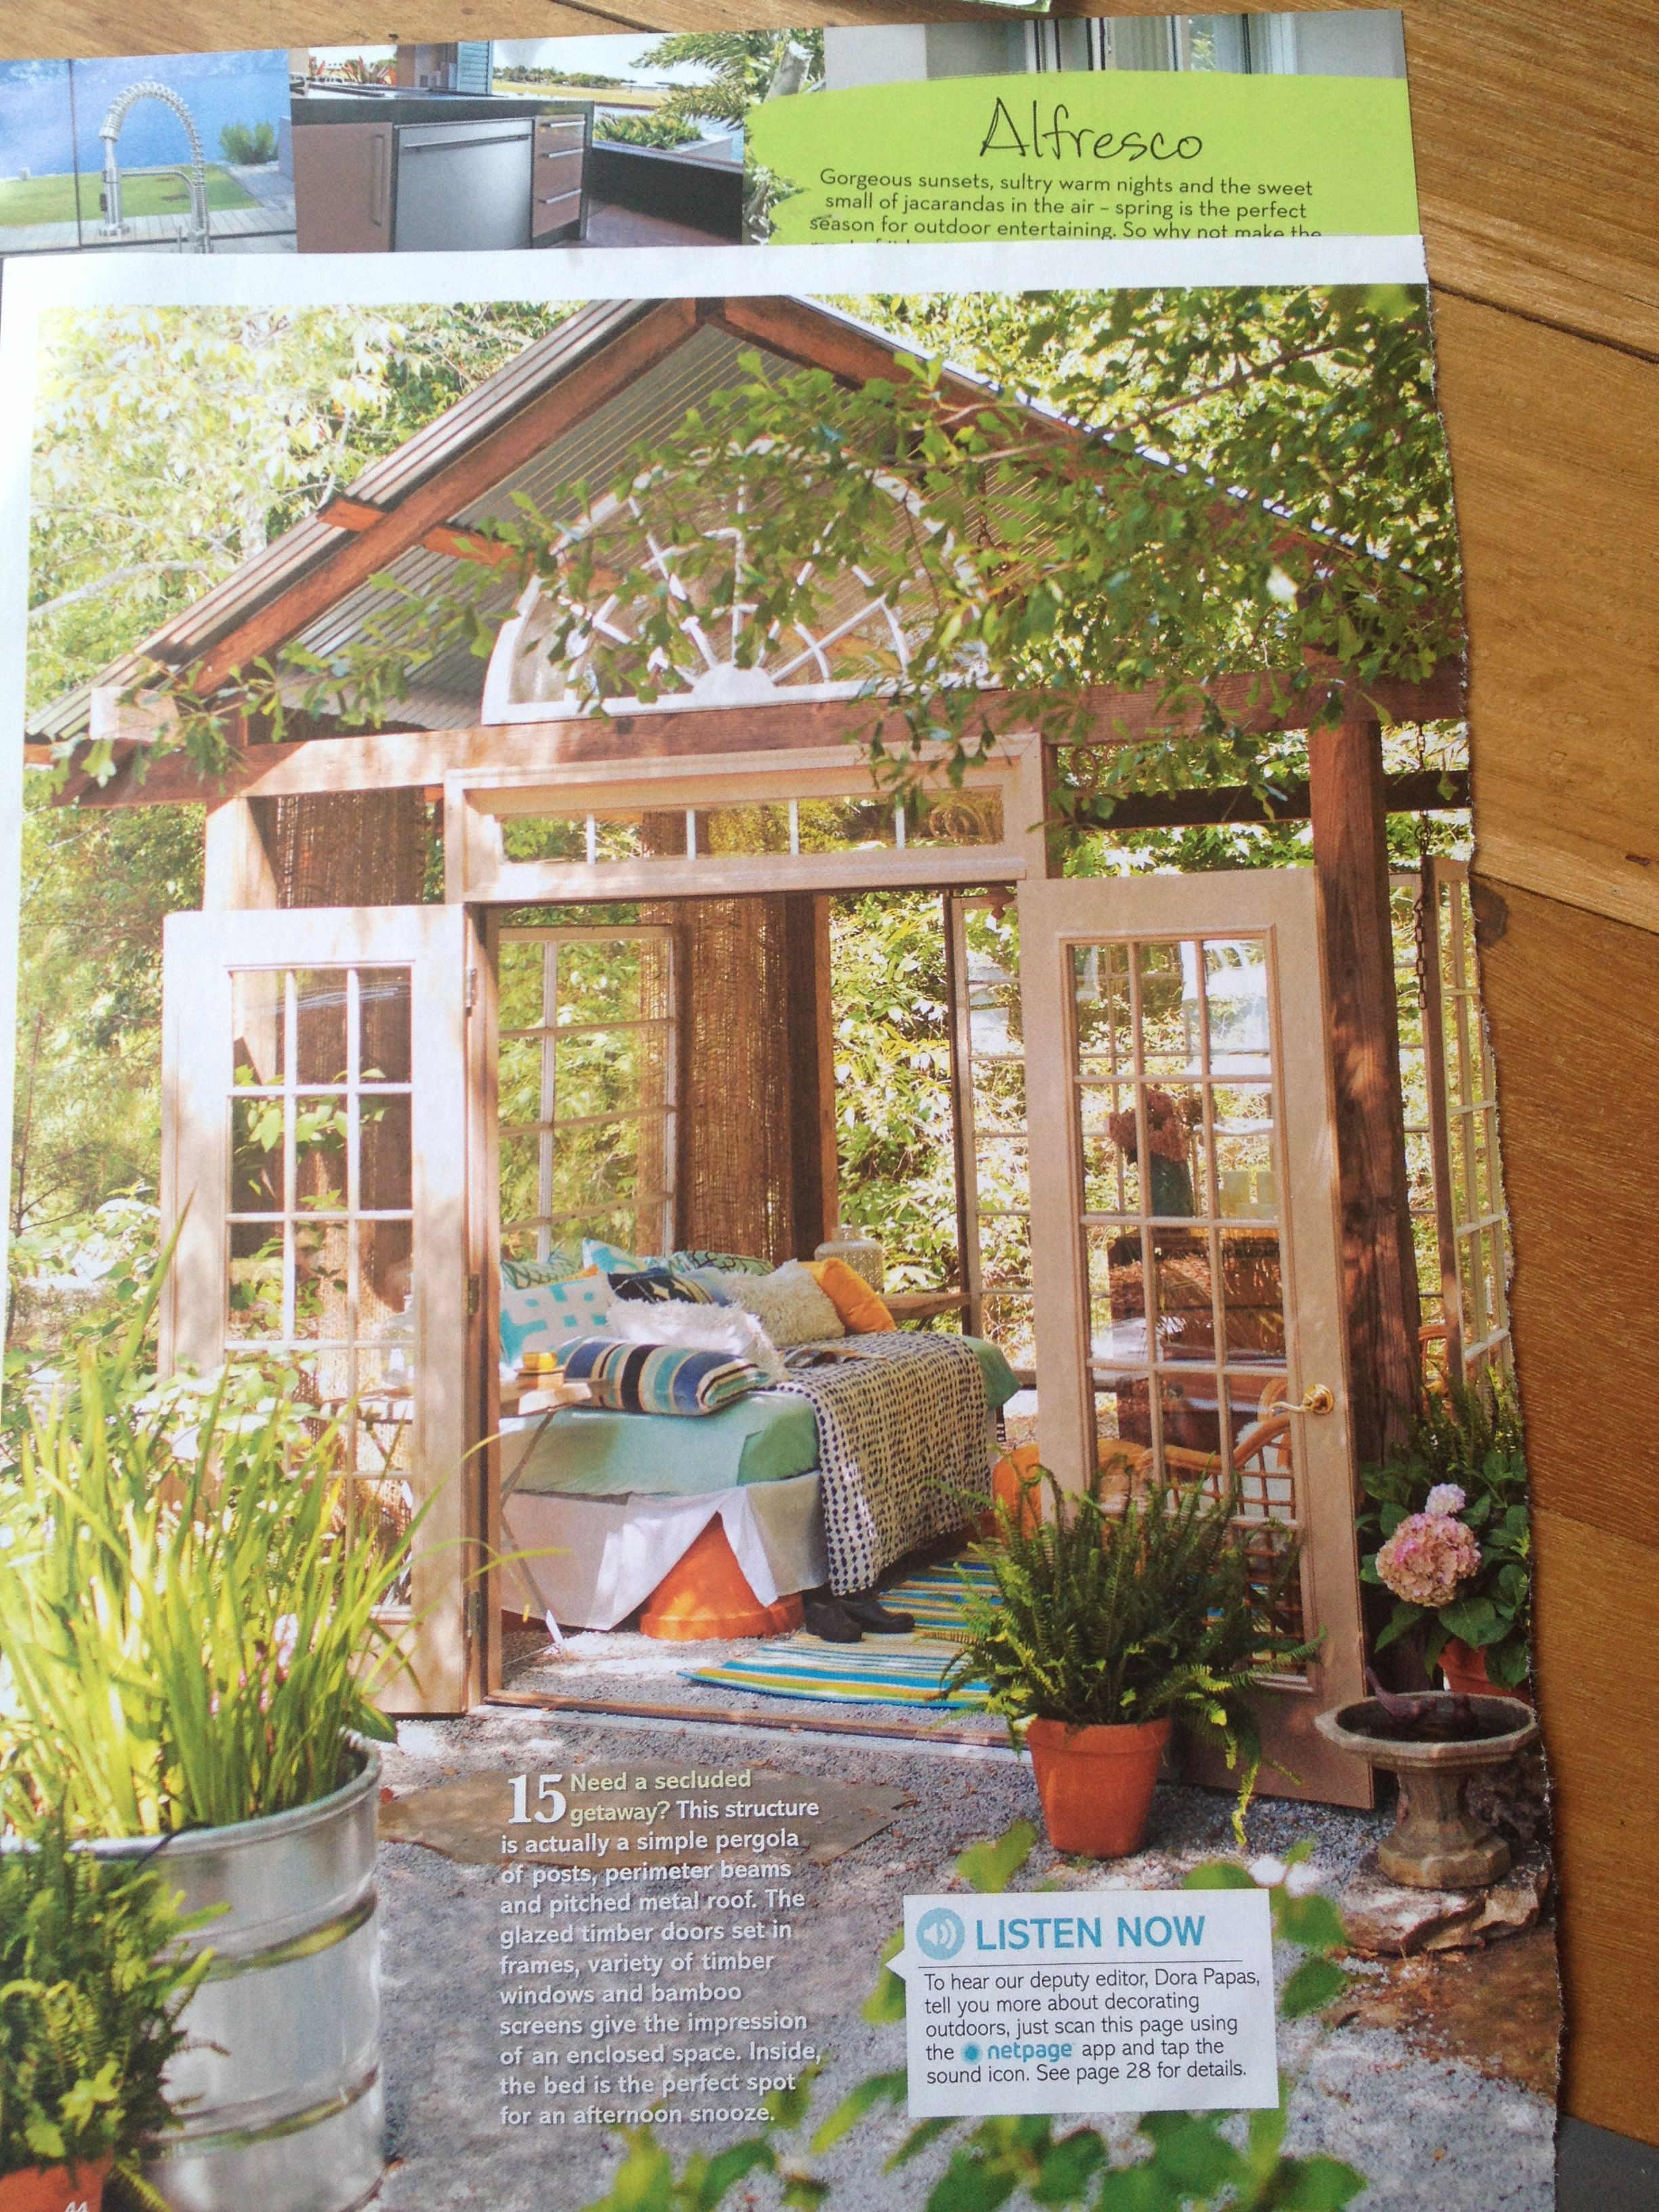 Omg outdoor room with daybed (With images) | Outdoor rooms ... on Living Spaces Outdoor Daybed id=21074